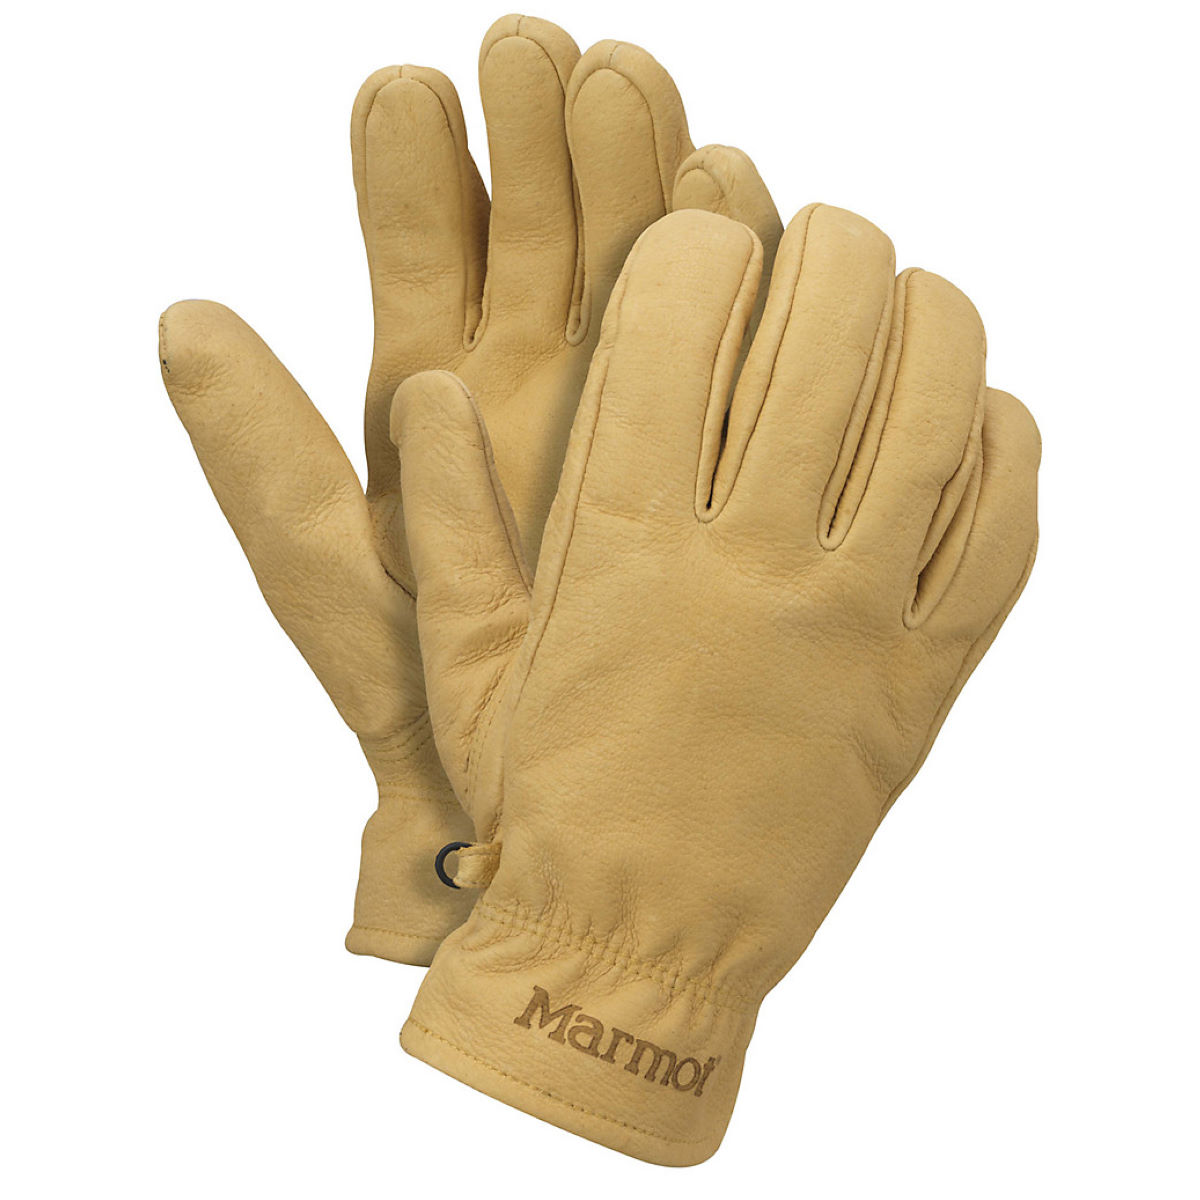 Marmot Basic Work Glove - Guantes